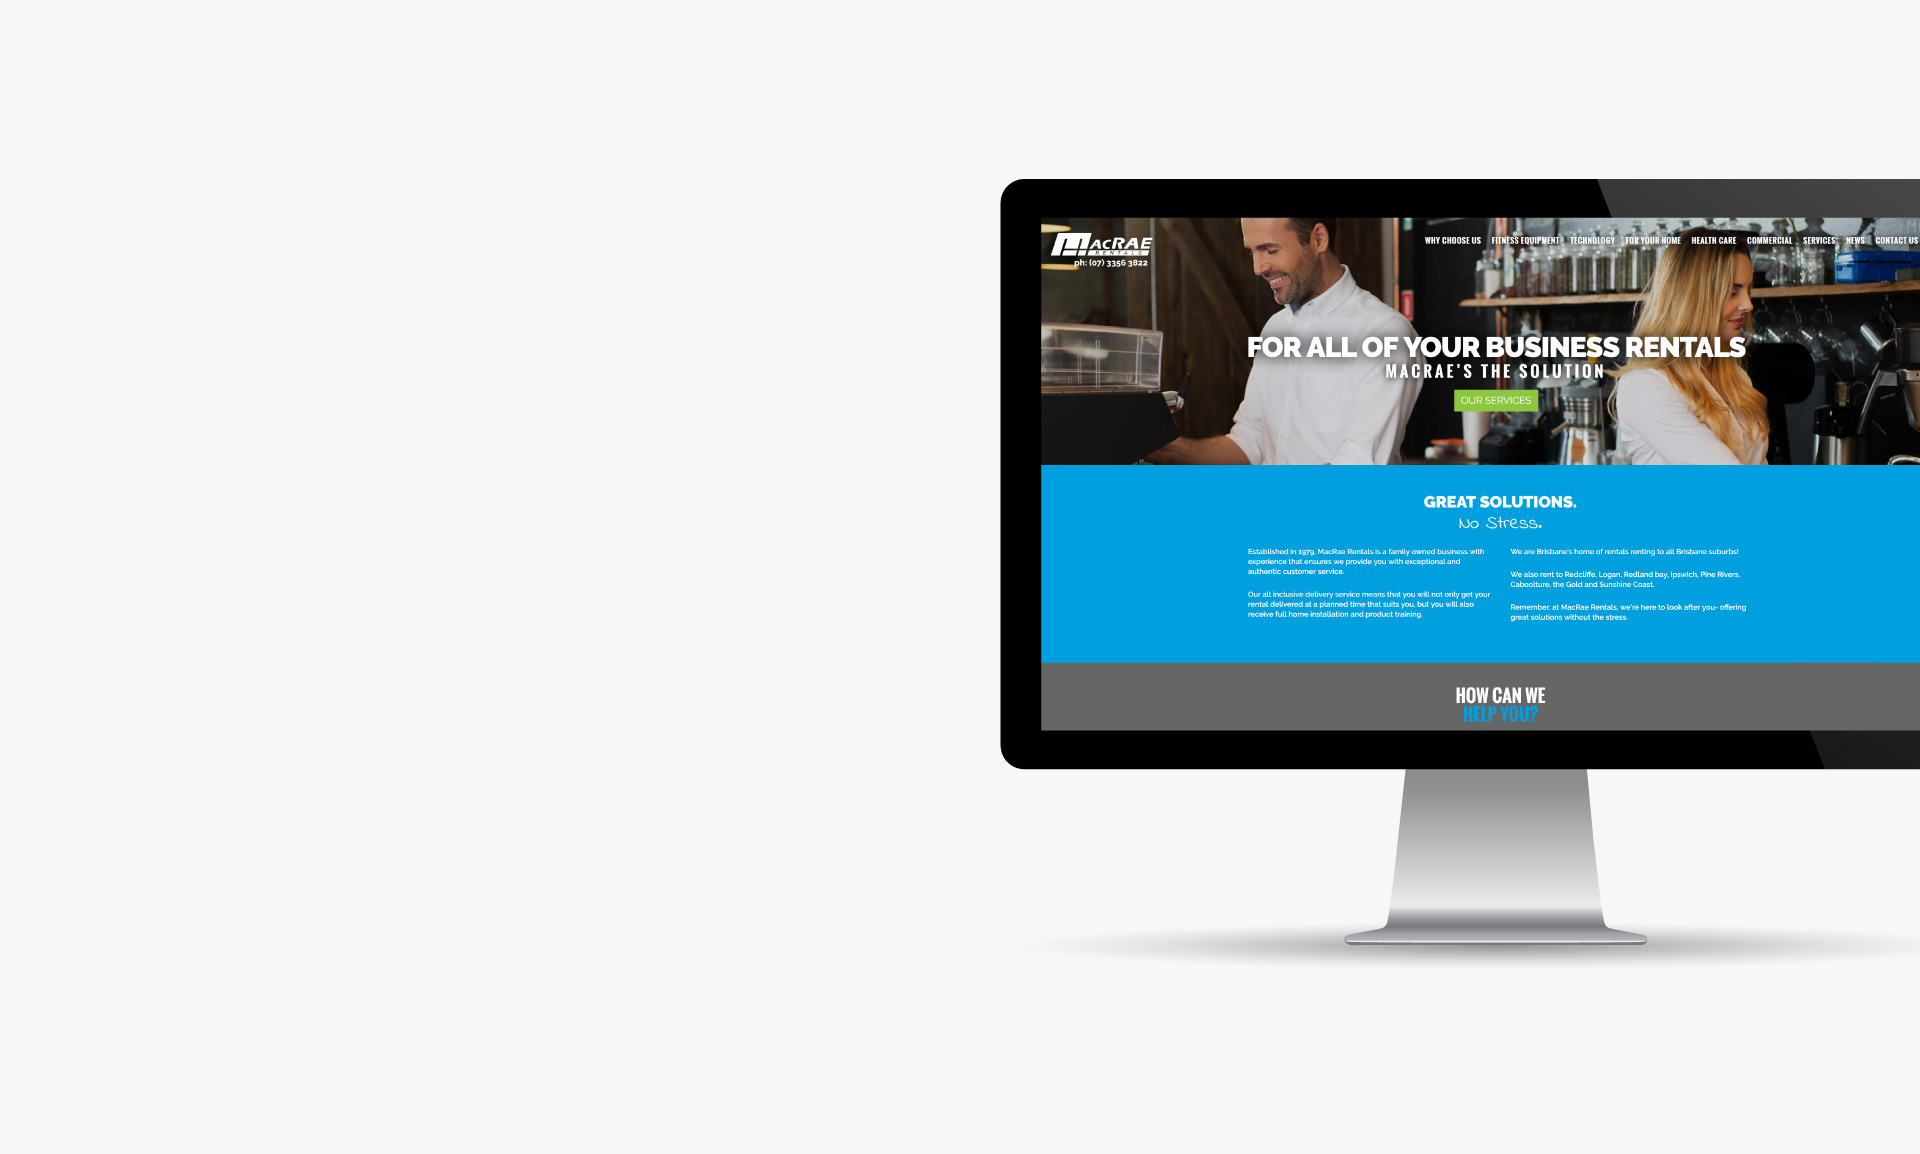 macrae-rentals-website-design-laptop-ronin-digital-marketing-client